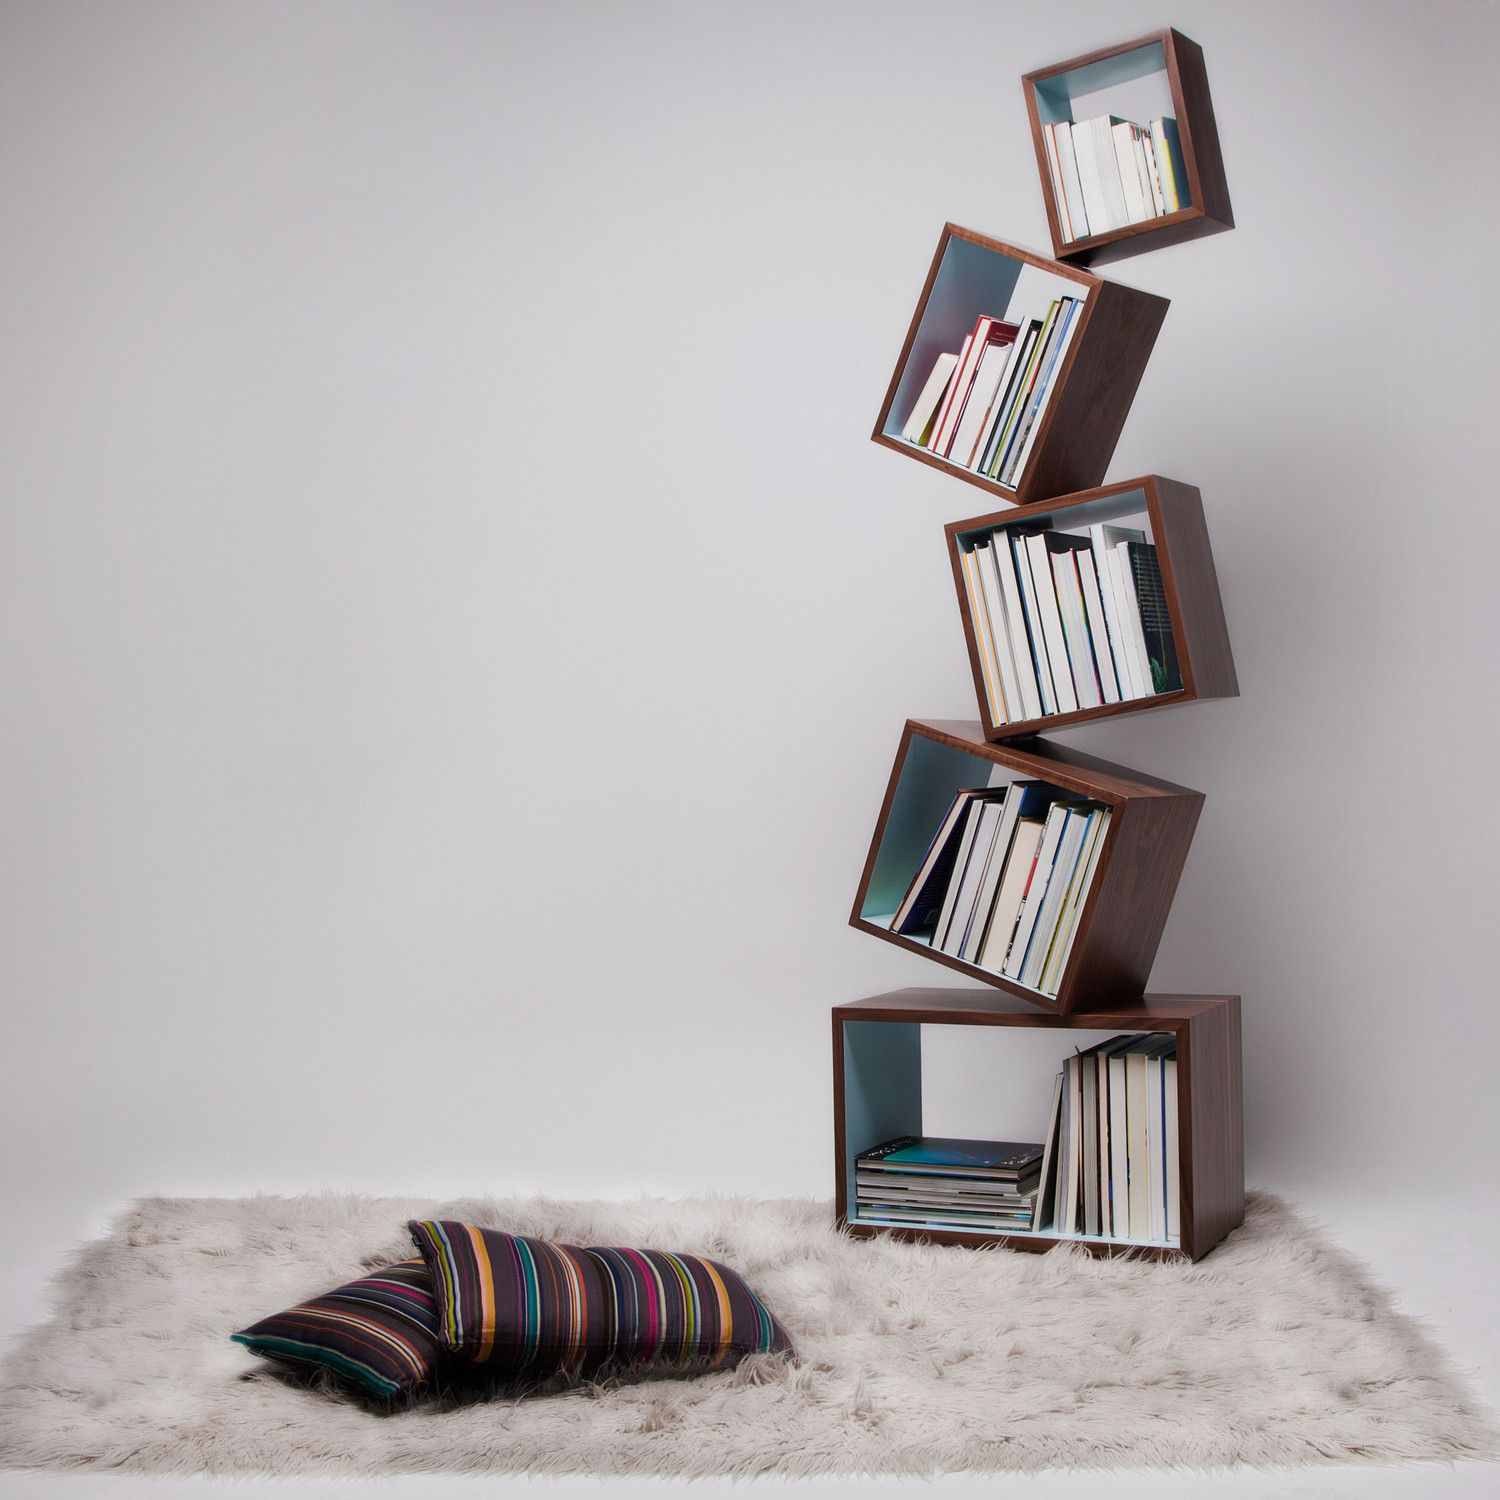 Equilibrium celeste shelving unit this is too cool